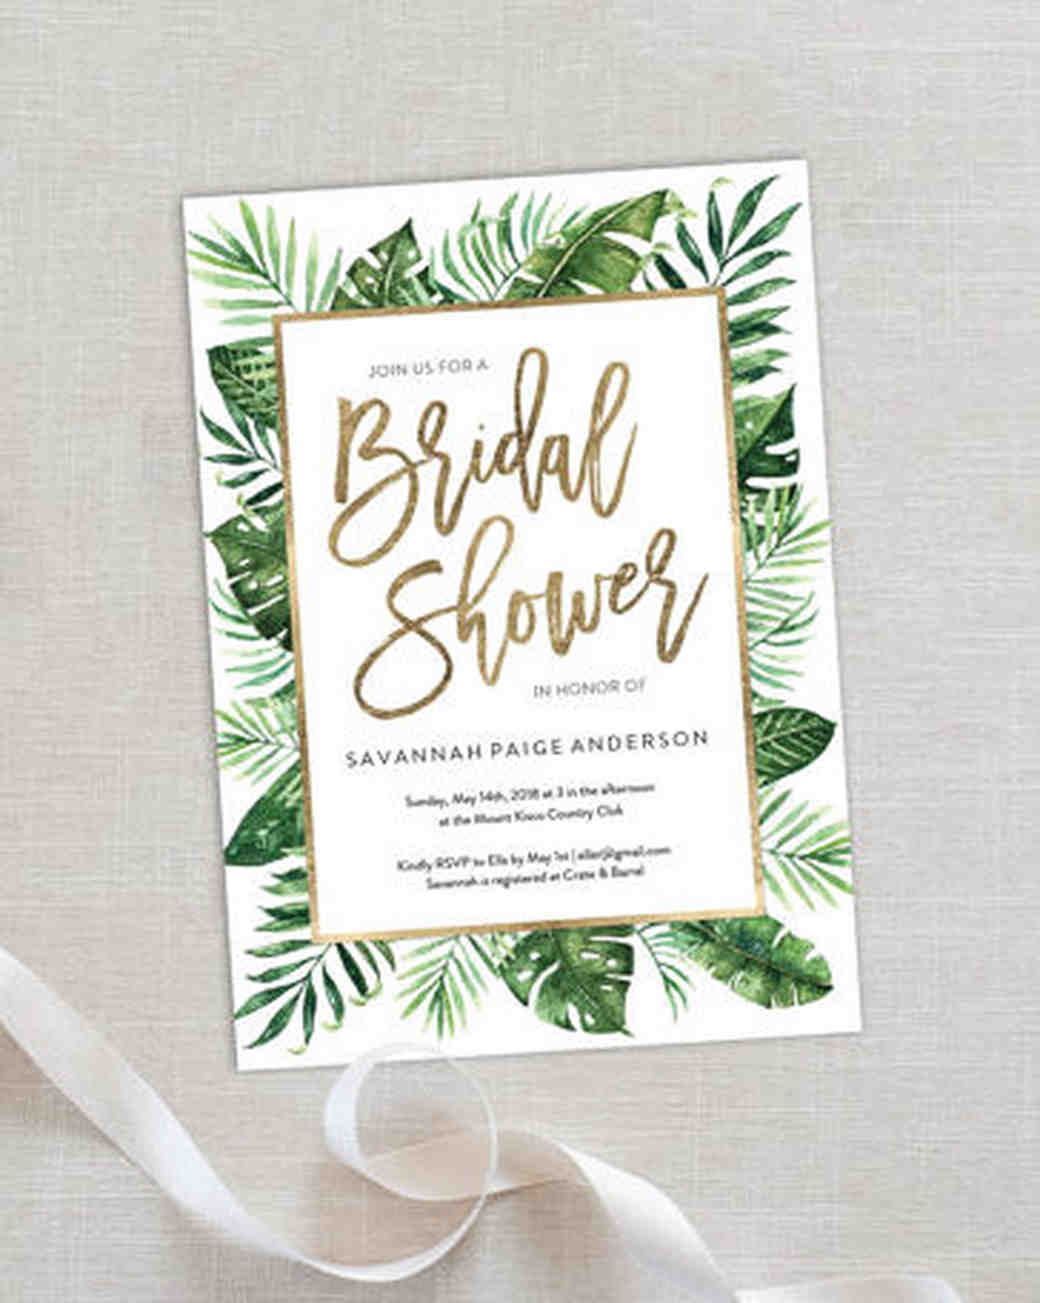 Fullsize Of Bridal Shower Invitations